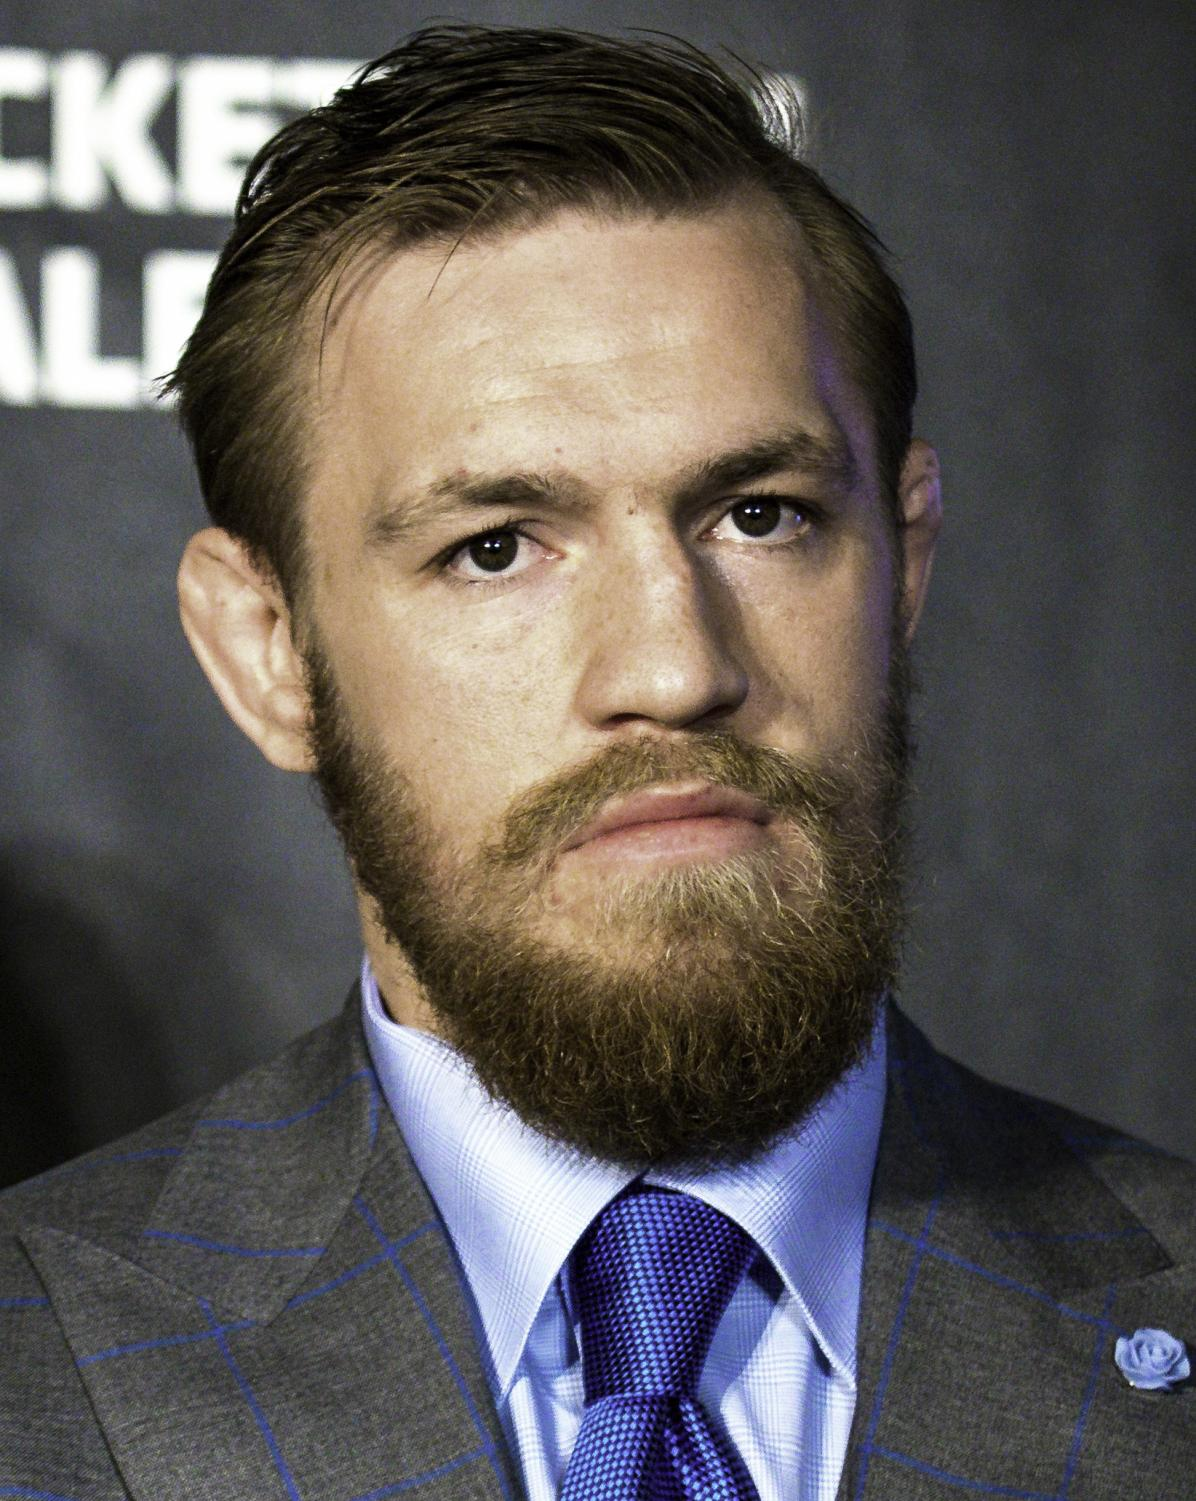 UFC fighter Conor McGregor was charged with three counts of assault after he attacked a bus containing fellow fighters at a Brooklyn press event on Thursday, April 5, 2018.